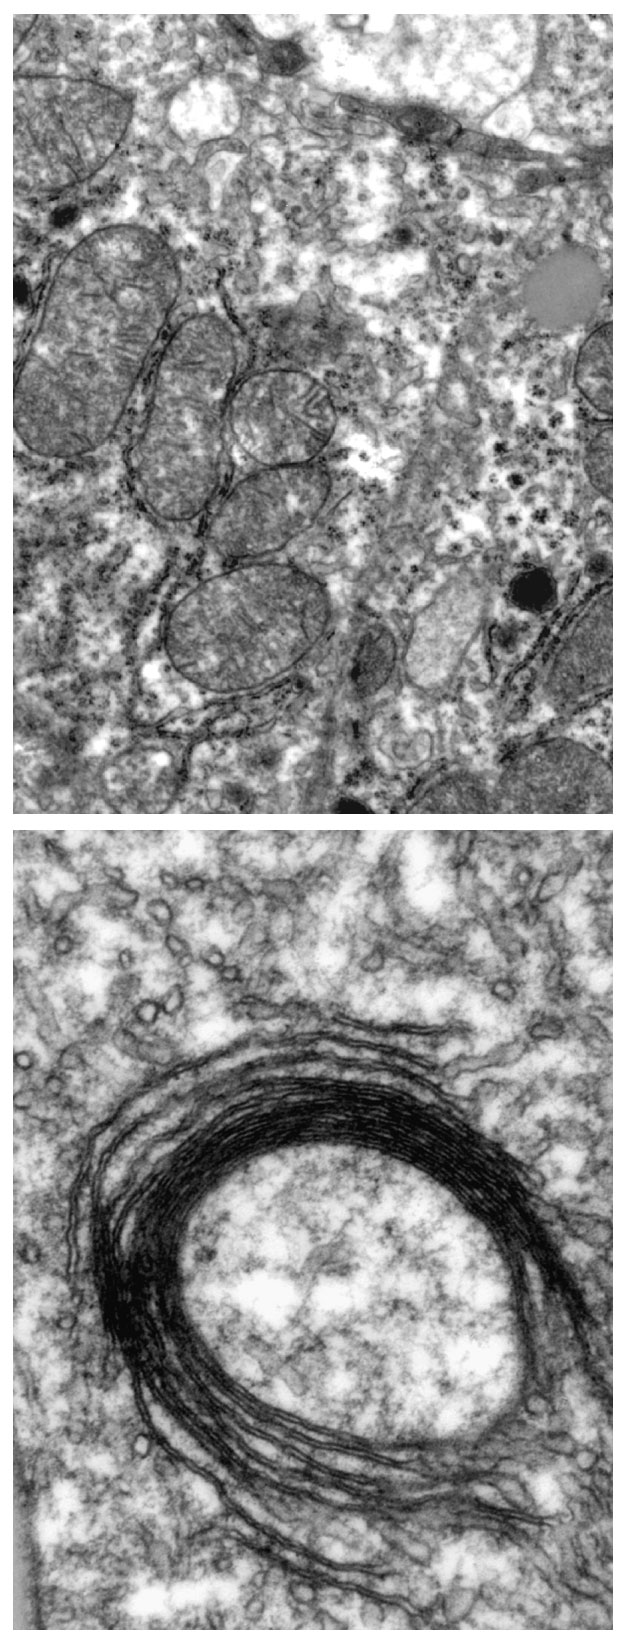 These electron microscopy images show mitochondria in a normal cell (top) and a close-up of a mitochondrion with structural defects, in a cell that cannot produce IRPs (bottom). Image credits: Bruno Galy/ EMBL